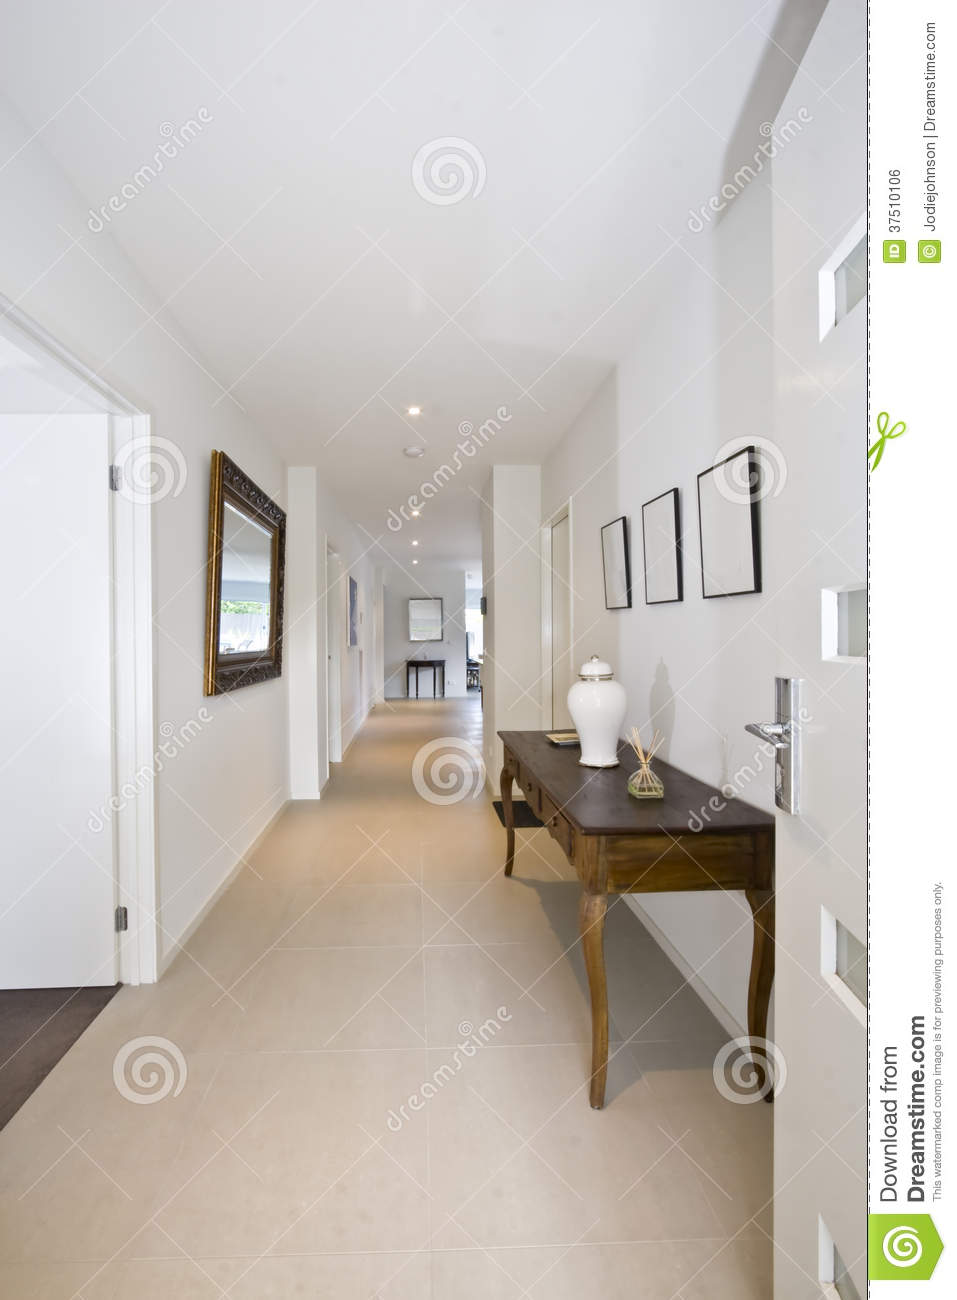 Entry Hall To Stylish Contemporary Home Stock Photo - Image of ...